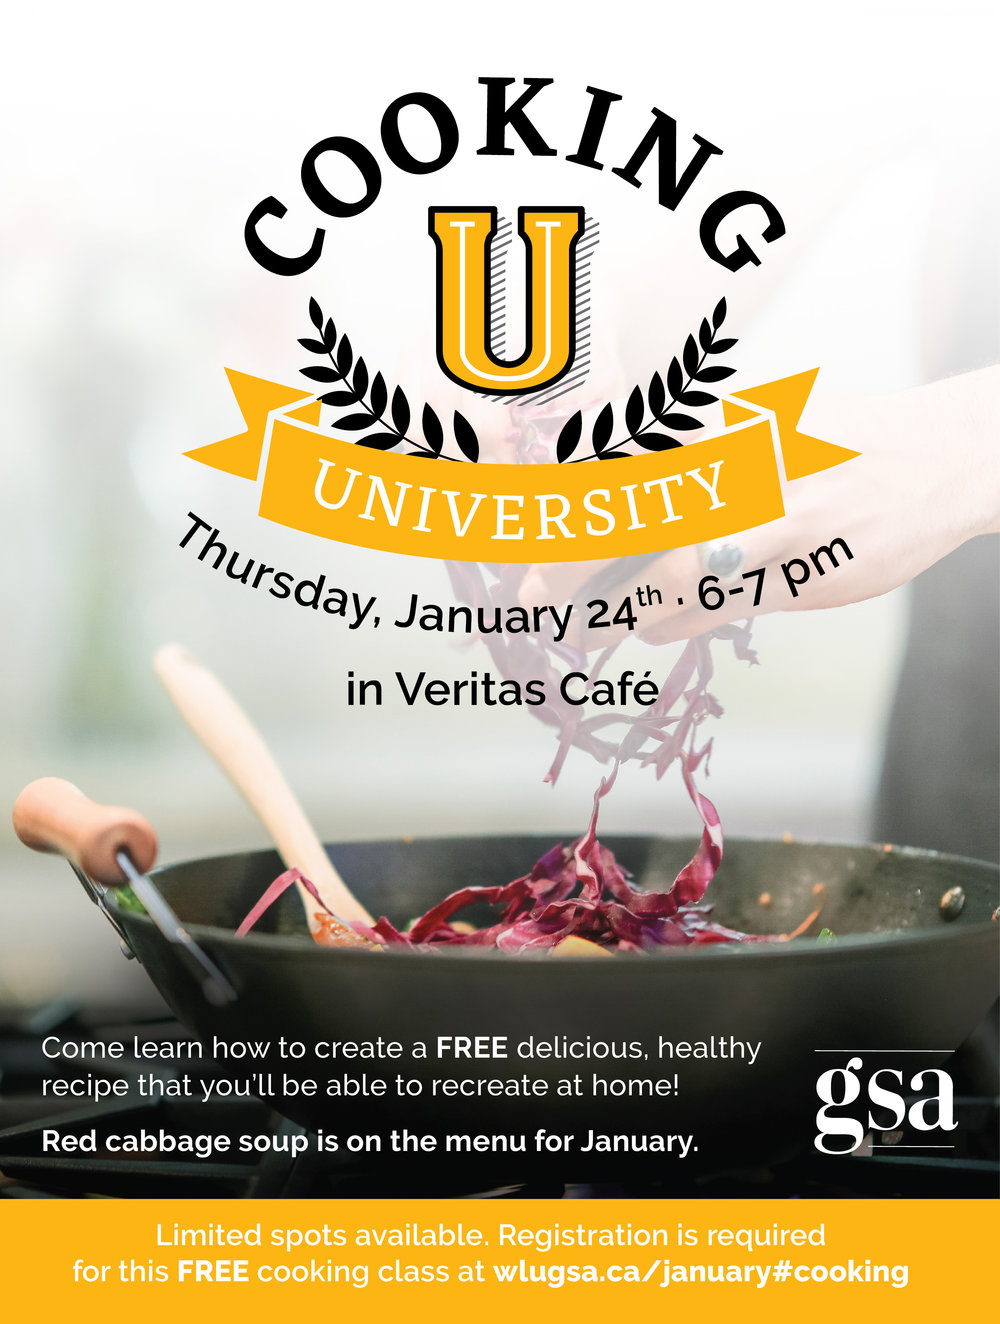 Cooking University, Thursday January 24th from 6-7 pm in Veritas Cafe. Come learn how to create a FREE delicious, healthy recipe that you'll be able to recreate at home! Red cabbage soup is on the menu for January. Limited spots available. Registration is required below for this FREE cooking class.